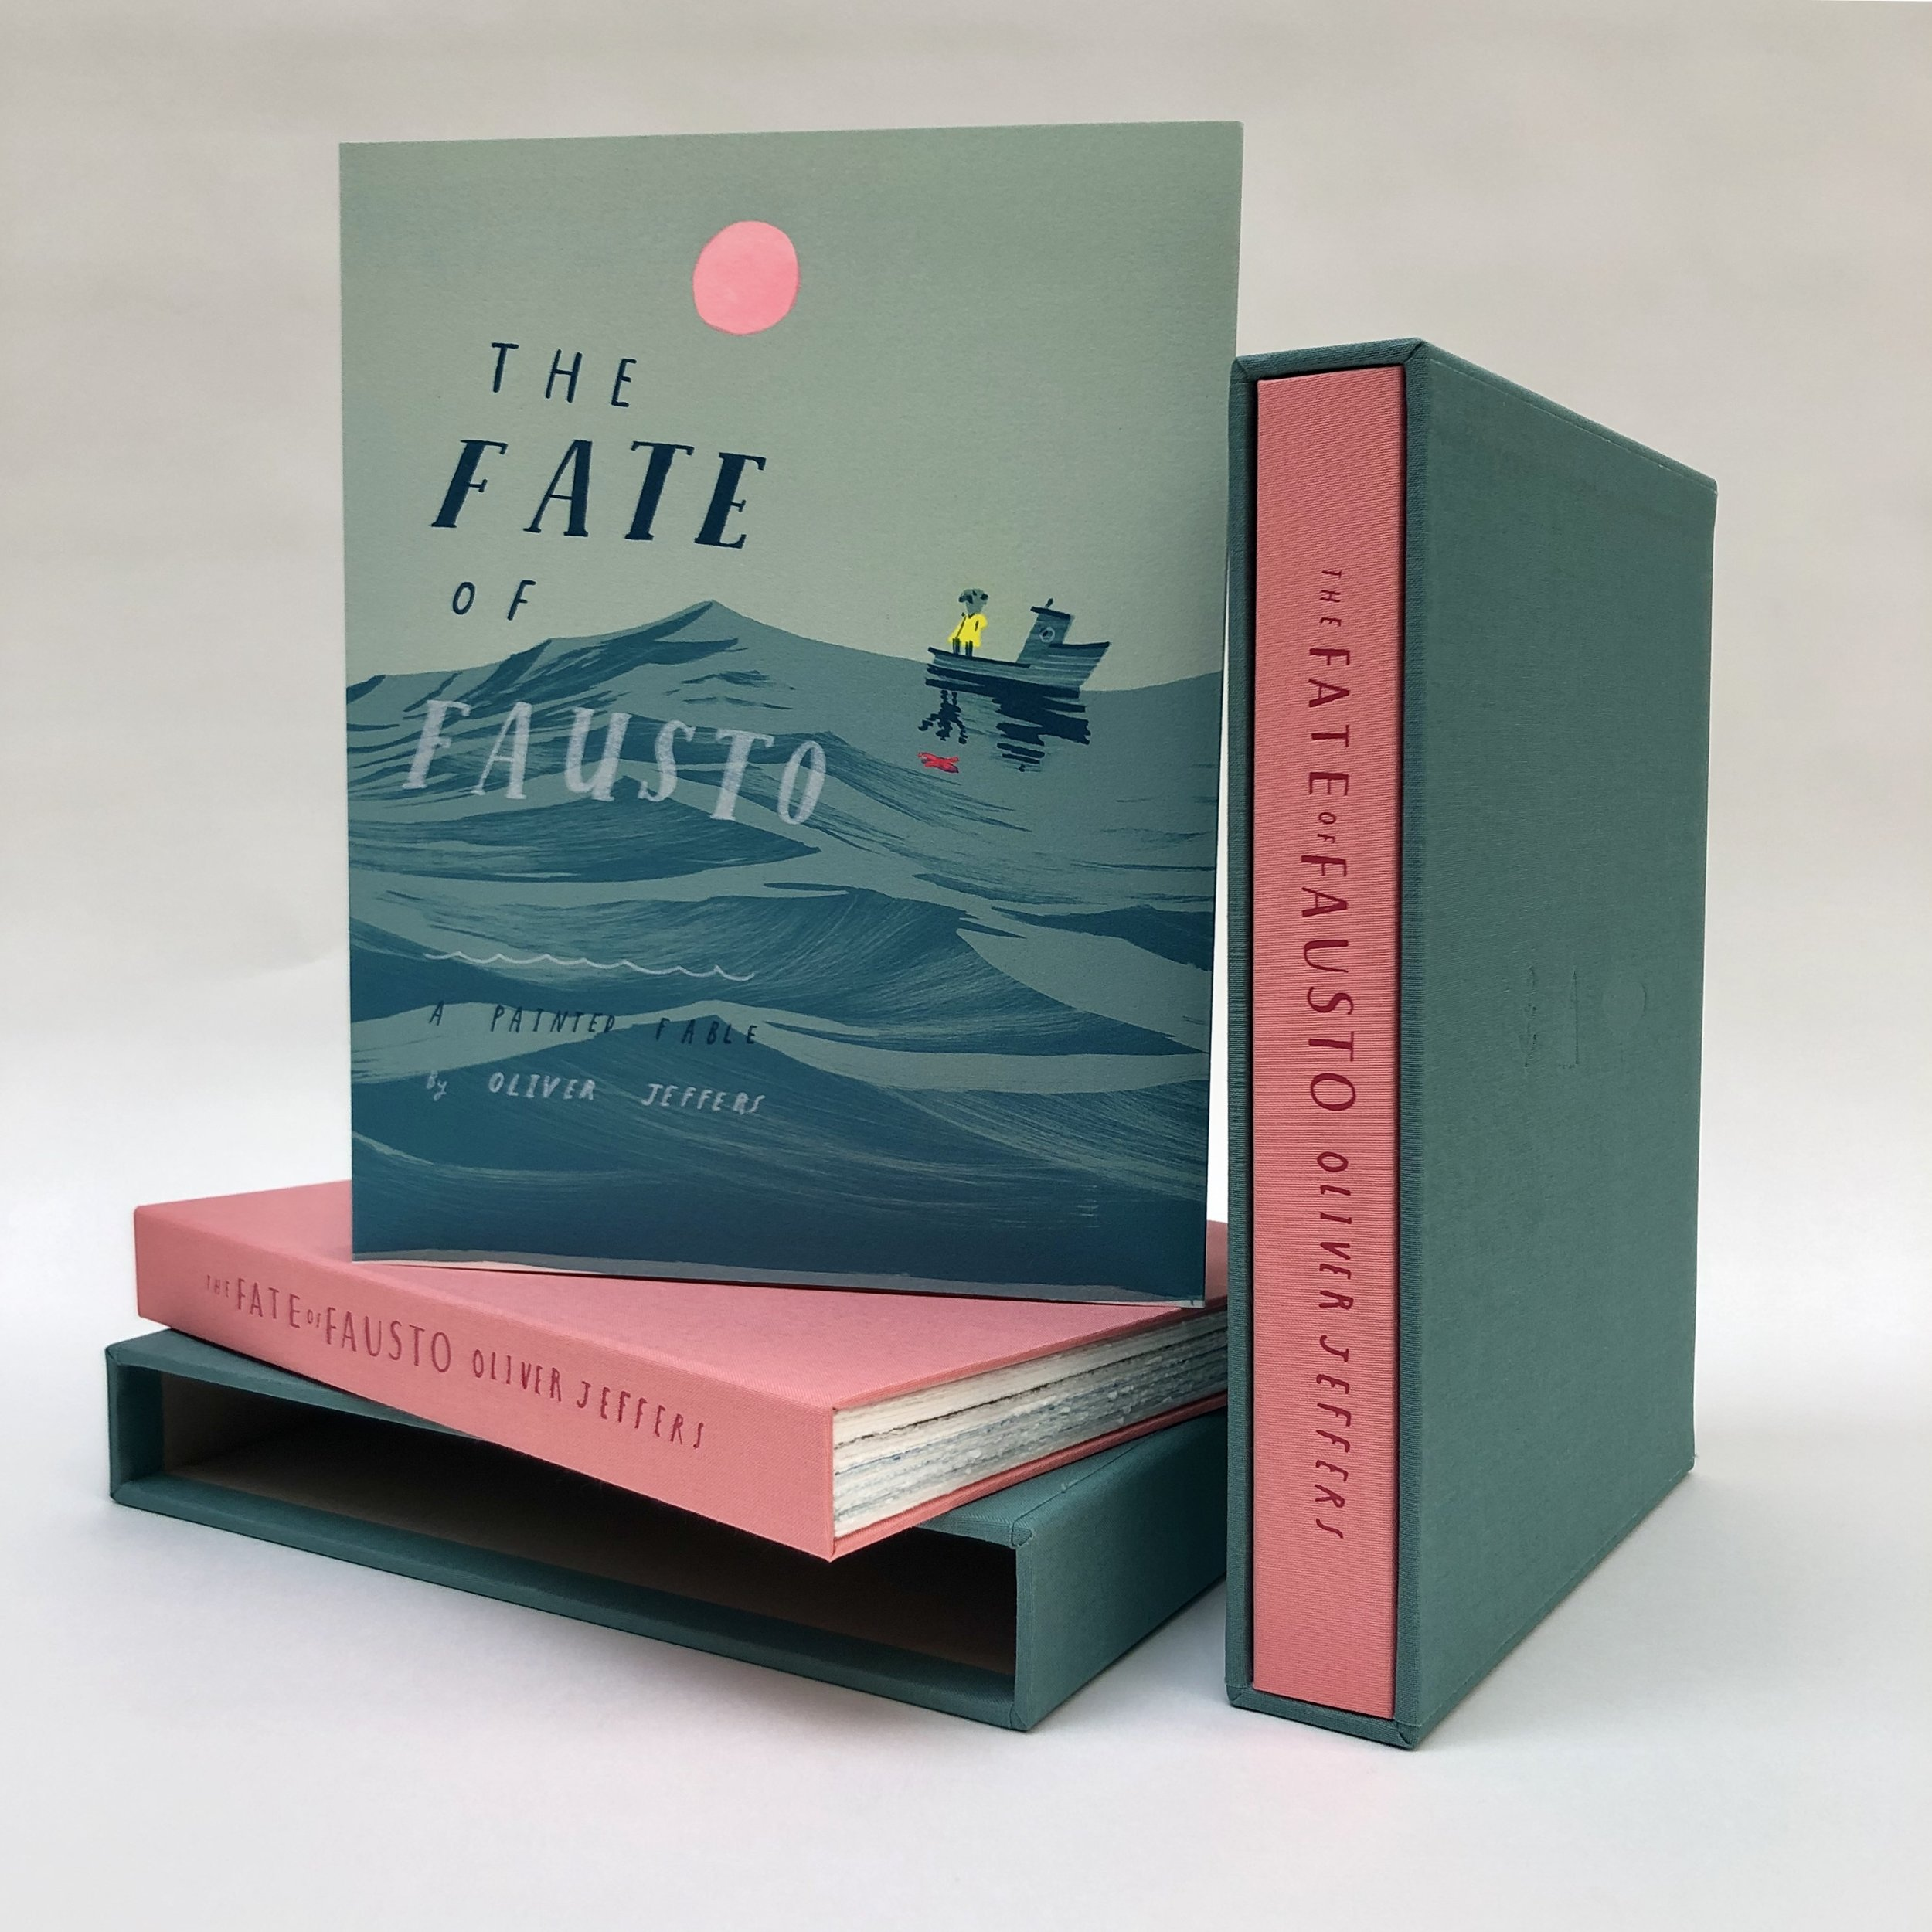 The Fate of Fausto,  Oliver Jeffers   Un livre d'artiste de 92 pages illustré de 36 lithographies originales en couleur,  imprimé et édité par Idem Paris  à 100 exemplaires sur BFK Rives 250 g. Chaque couverture est rehaussée à la gouache par l'artiste. Le livre est proposé dans un étui toilé bicolore réalisé par l'atelier Agoria à Vincennes.  Format du livre: 27,2 x 21,4 cm /Format de l'étui: 28,4 x 22 cm  Prix du livre: 2 200 euros  Dix lithographies grandes marges tirées du livre ont été éditées, ainsi qu'une lithographie additionnelle de grand format :  https://www.idemparis.com/oliver-jeffers    Pour toute information complémentaire, merci de nous contacter :    info@idemparis.com    __    The Fate of Fausto,  Oliver Jeffers   An artist book of 92 pages, illustrated of 36 original color lithographs,  printed and published by Idem Paris.  An edition of 100 on BFK Rives 250. Each cover is hand-finished with gouache by the artist. The book is enclosed in a two-tone canvas slipcase realized by the studio Agoria in Vincences.  Book size: 27,2 x 21,4 cm / Slipcase size: 28,4 x 22 cm  Price of the book: 2 200 euros  Ten lithographs with large margins from the book and a large format lithograph on stone are also available:  https://www.idemparis.com/oliver-jeffers    For any sales inquiries, please contact us at: info@idemparis.com